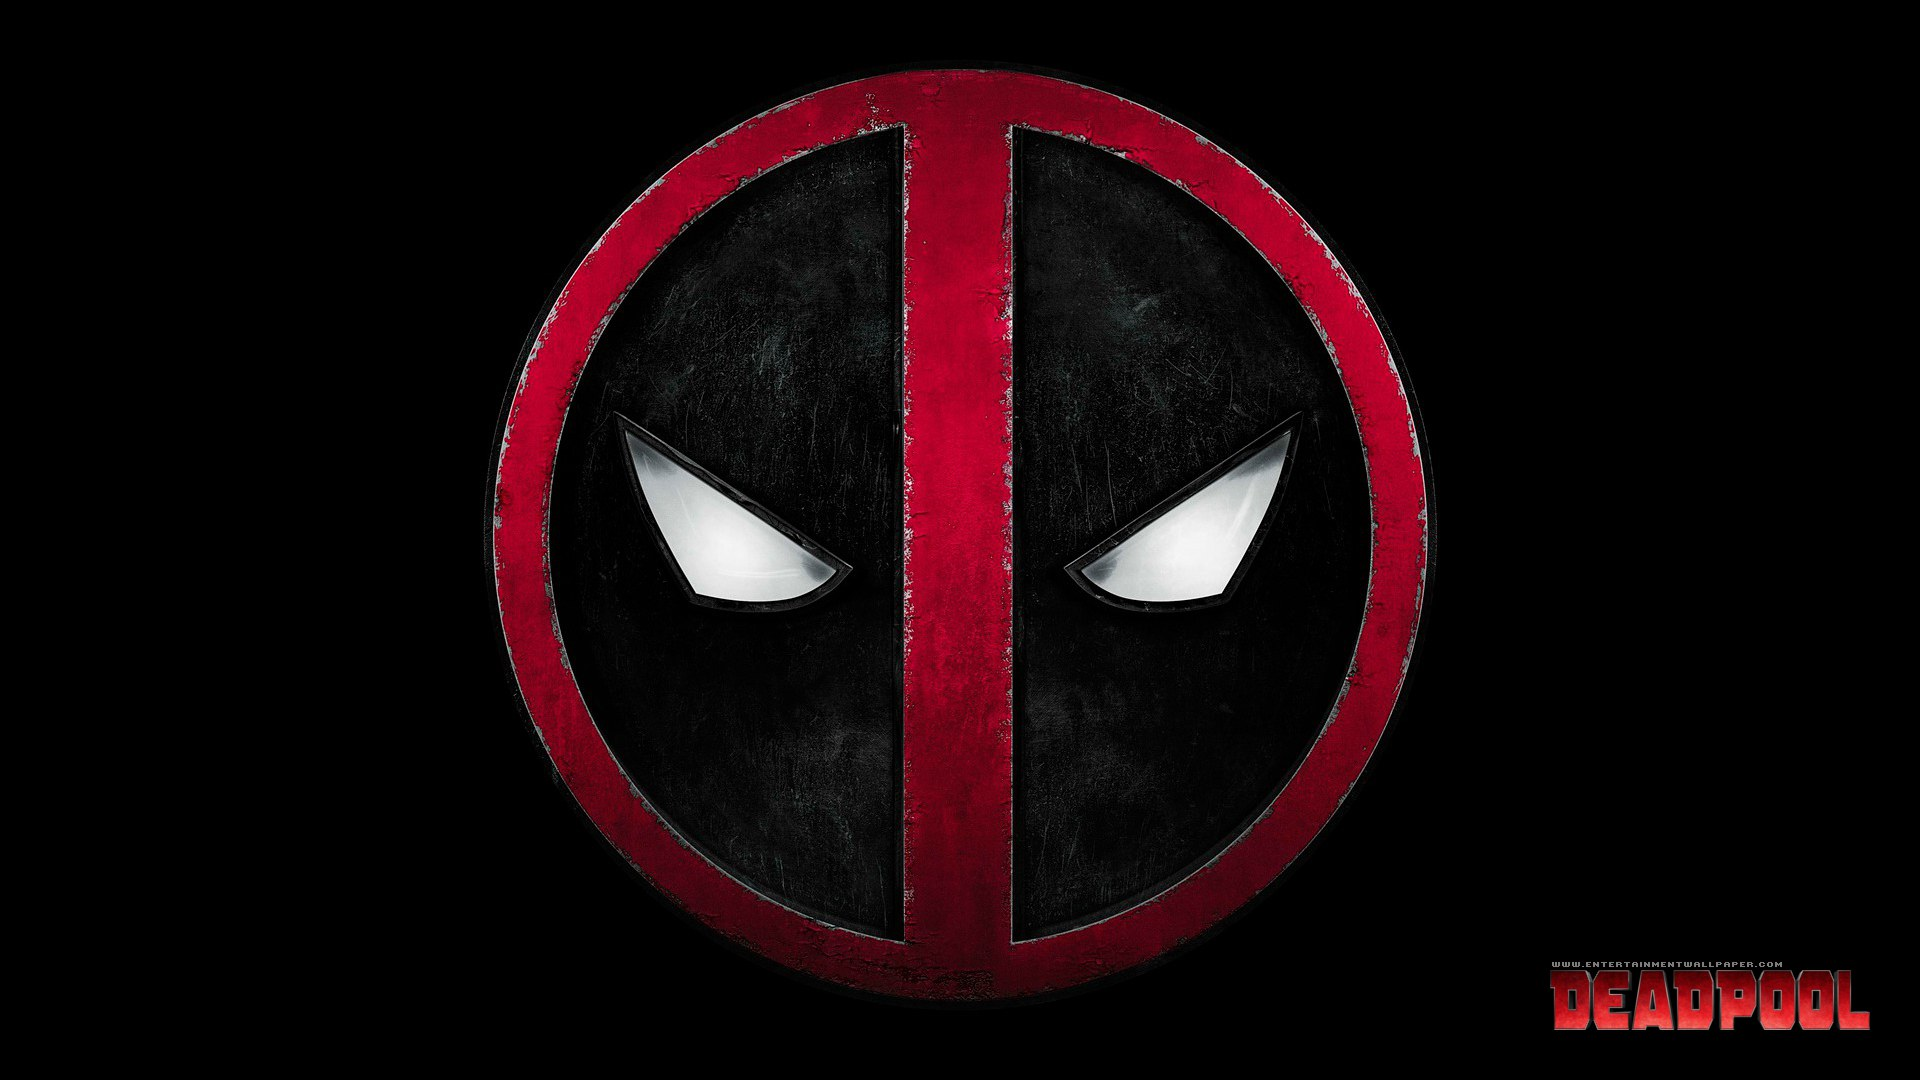 Deadpool Wallpapers  Pictures  Images Deadpool Full HD Wallpaper 1920x1080